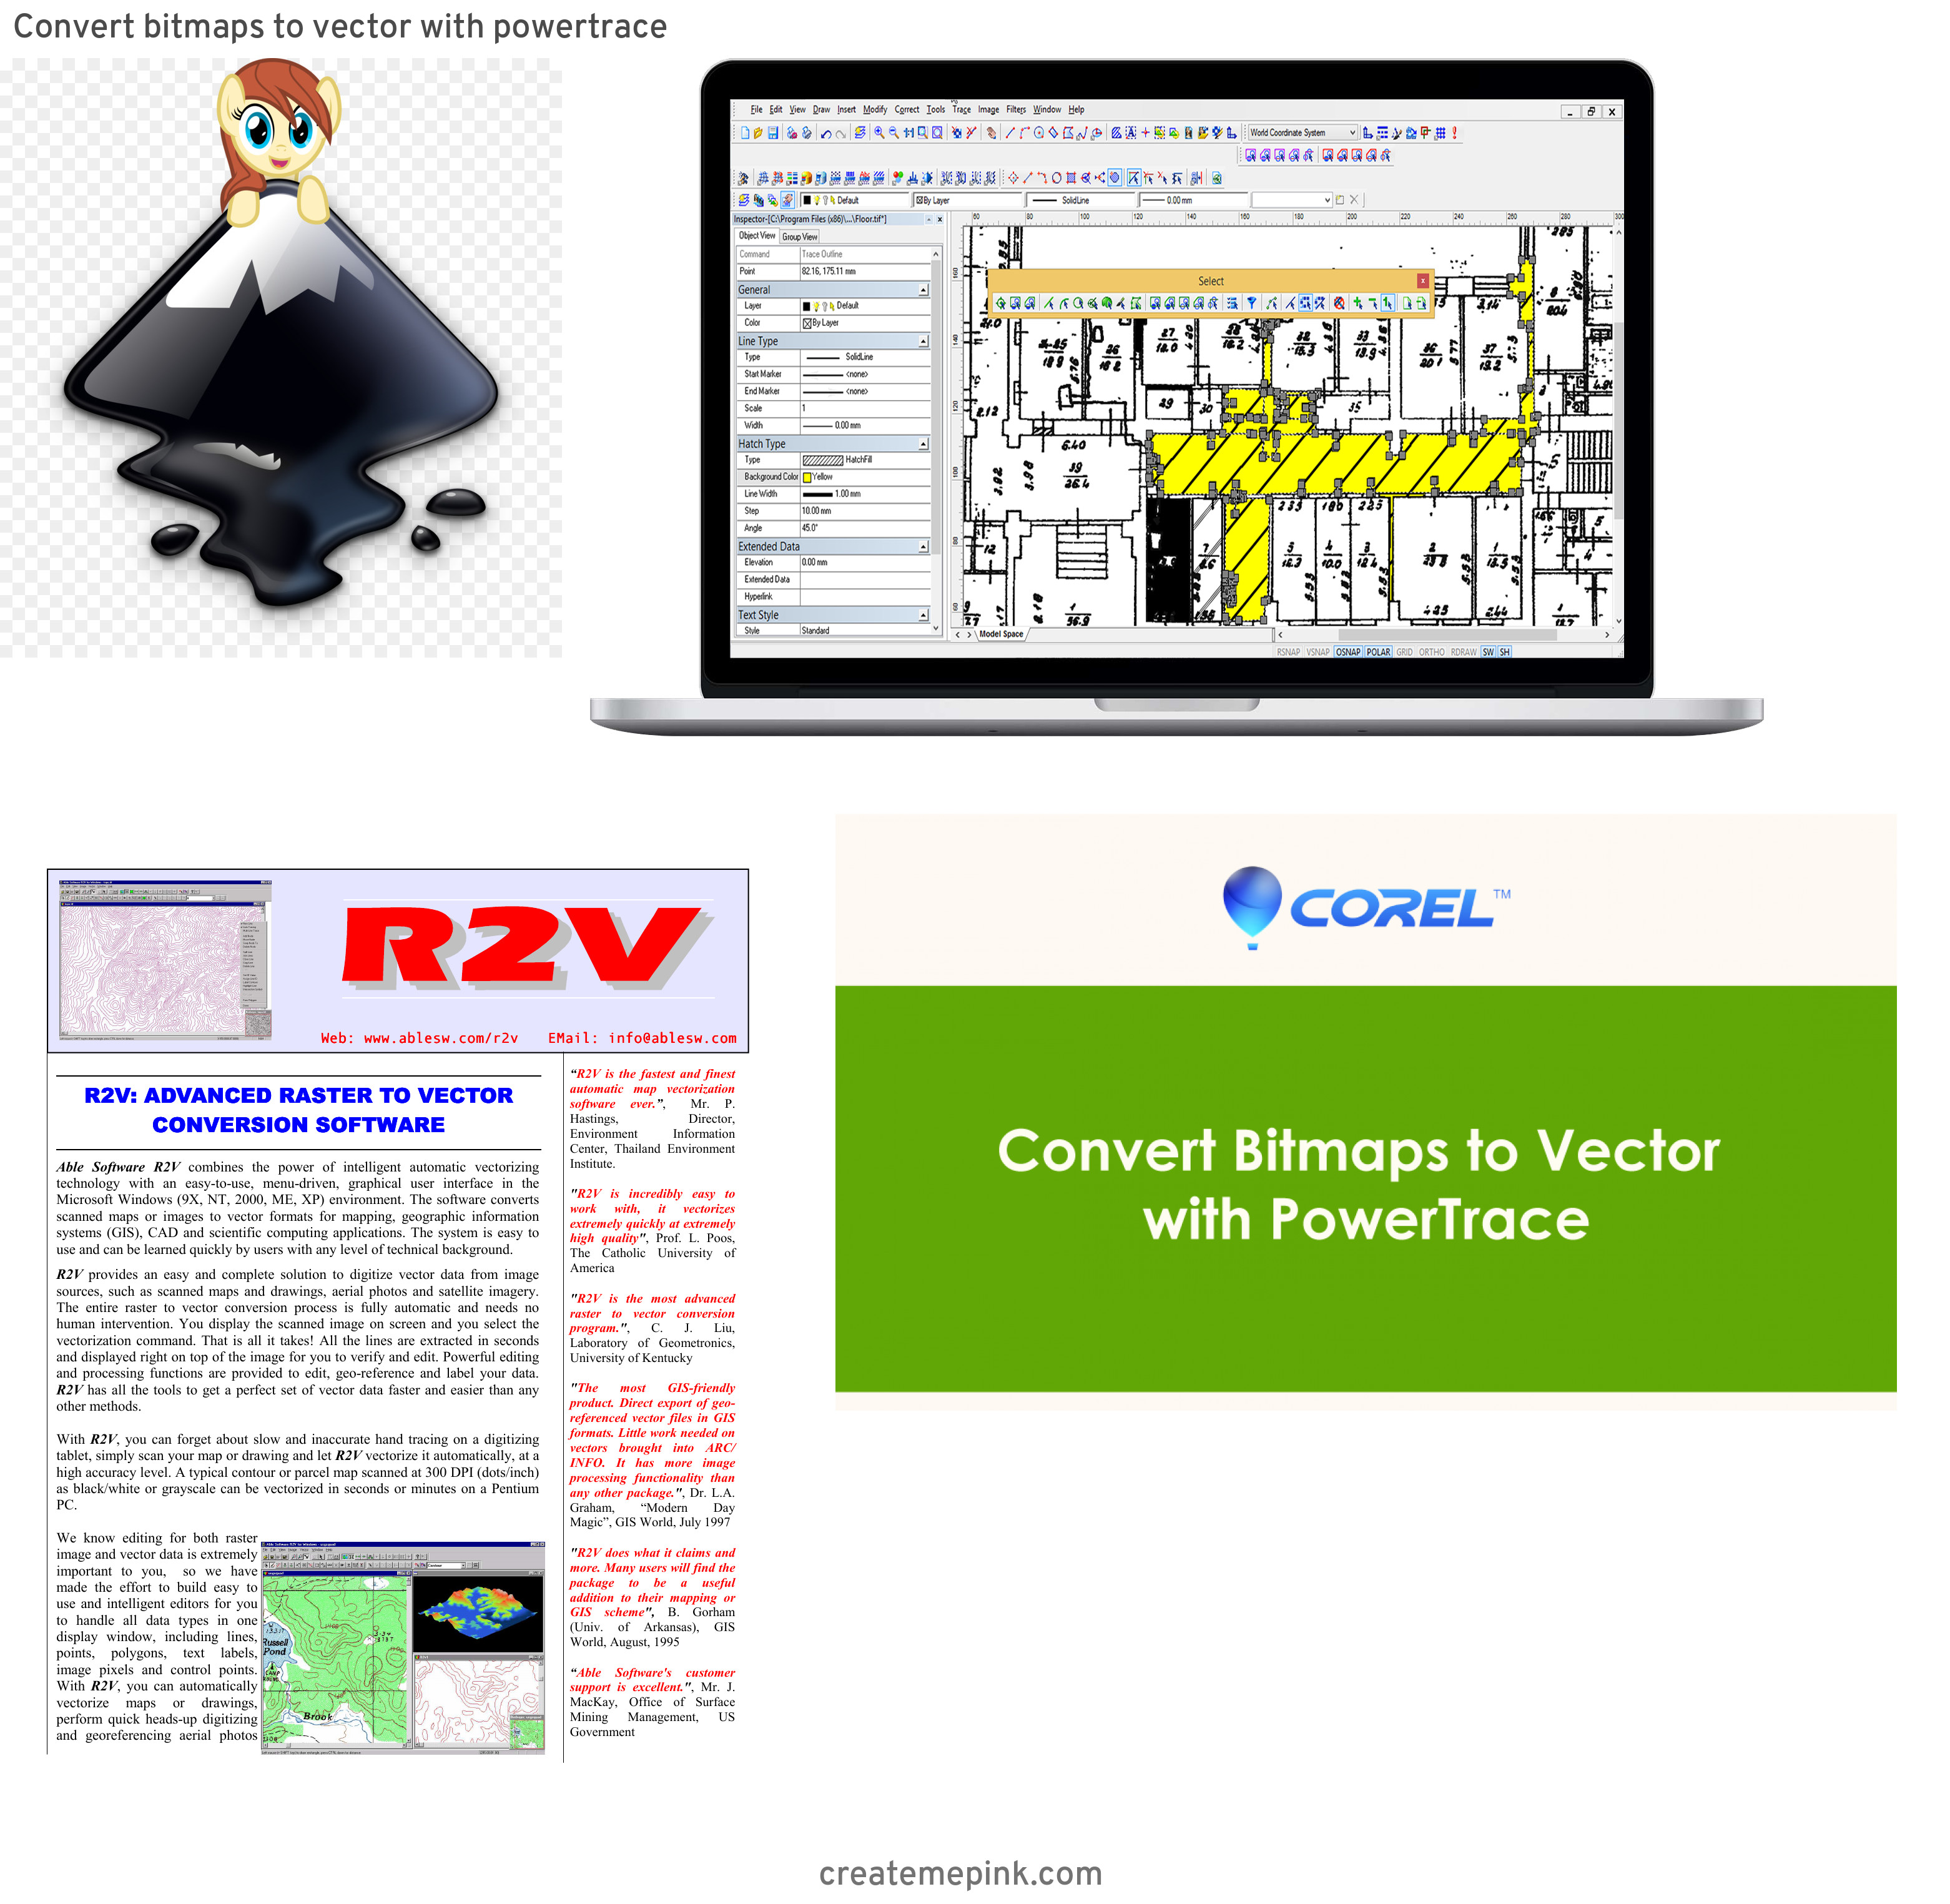 Tracing Bitmap To Vector Software: Convert Bitmaps To Vector With Powertrace